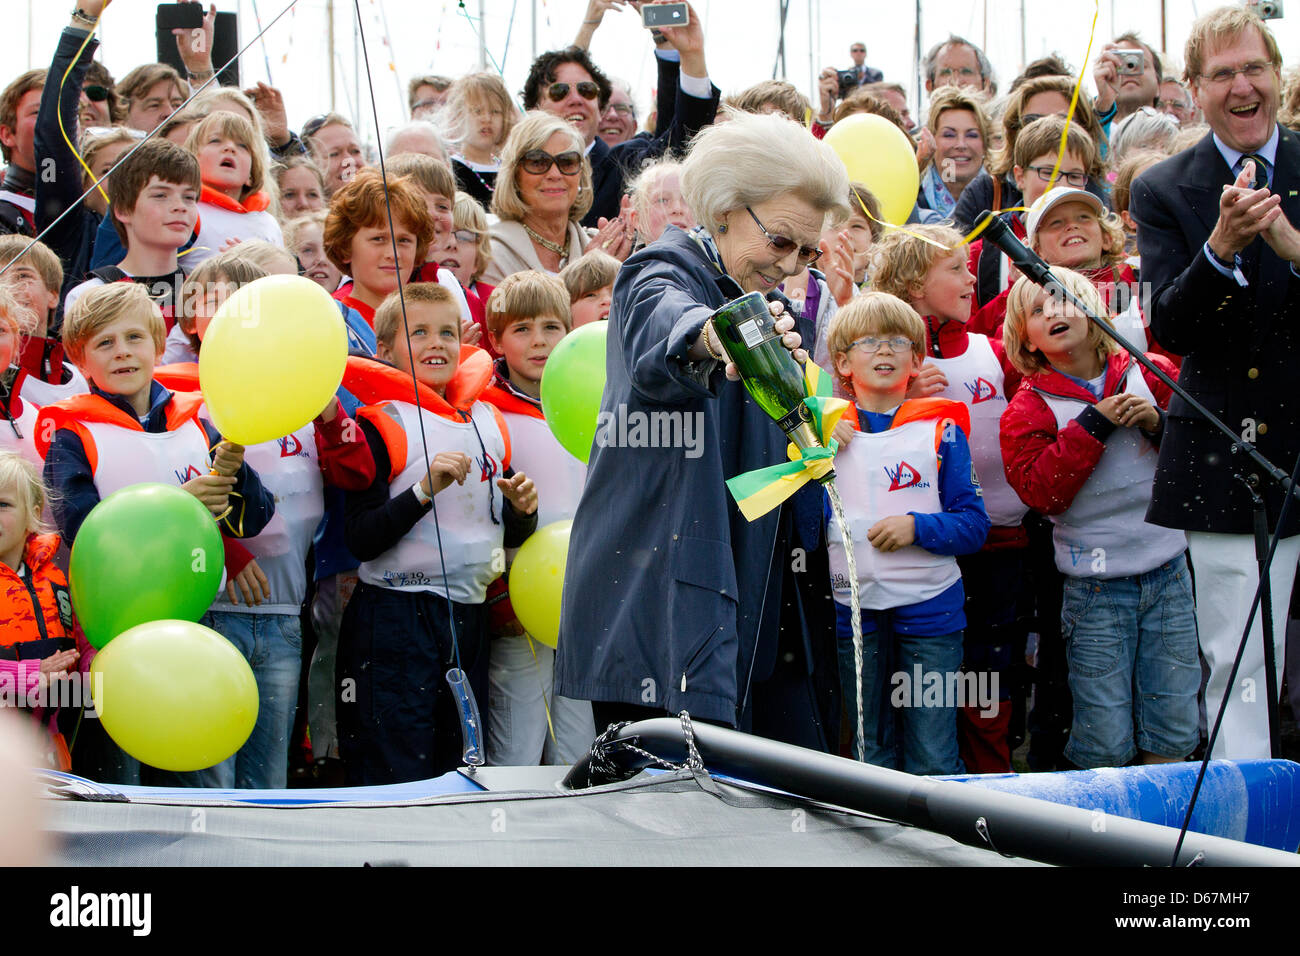 Dutch Queen Beatrix attends the celebrations of the 100th anniversary of the Royal Water Foundation Loosdrecht (KWVL) - Stock Image